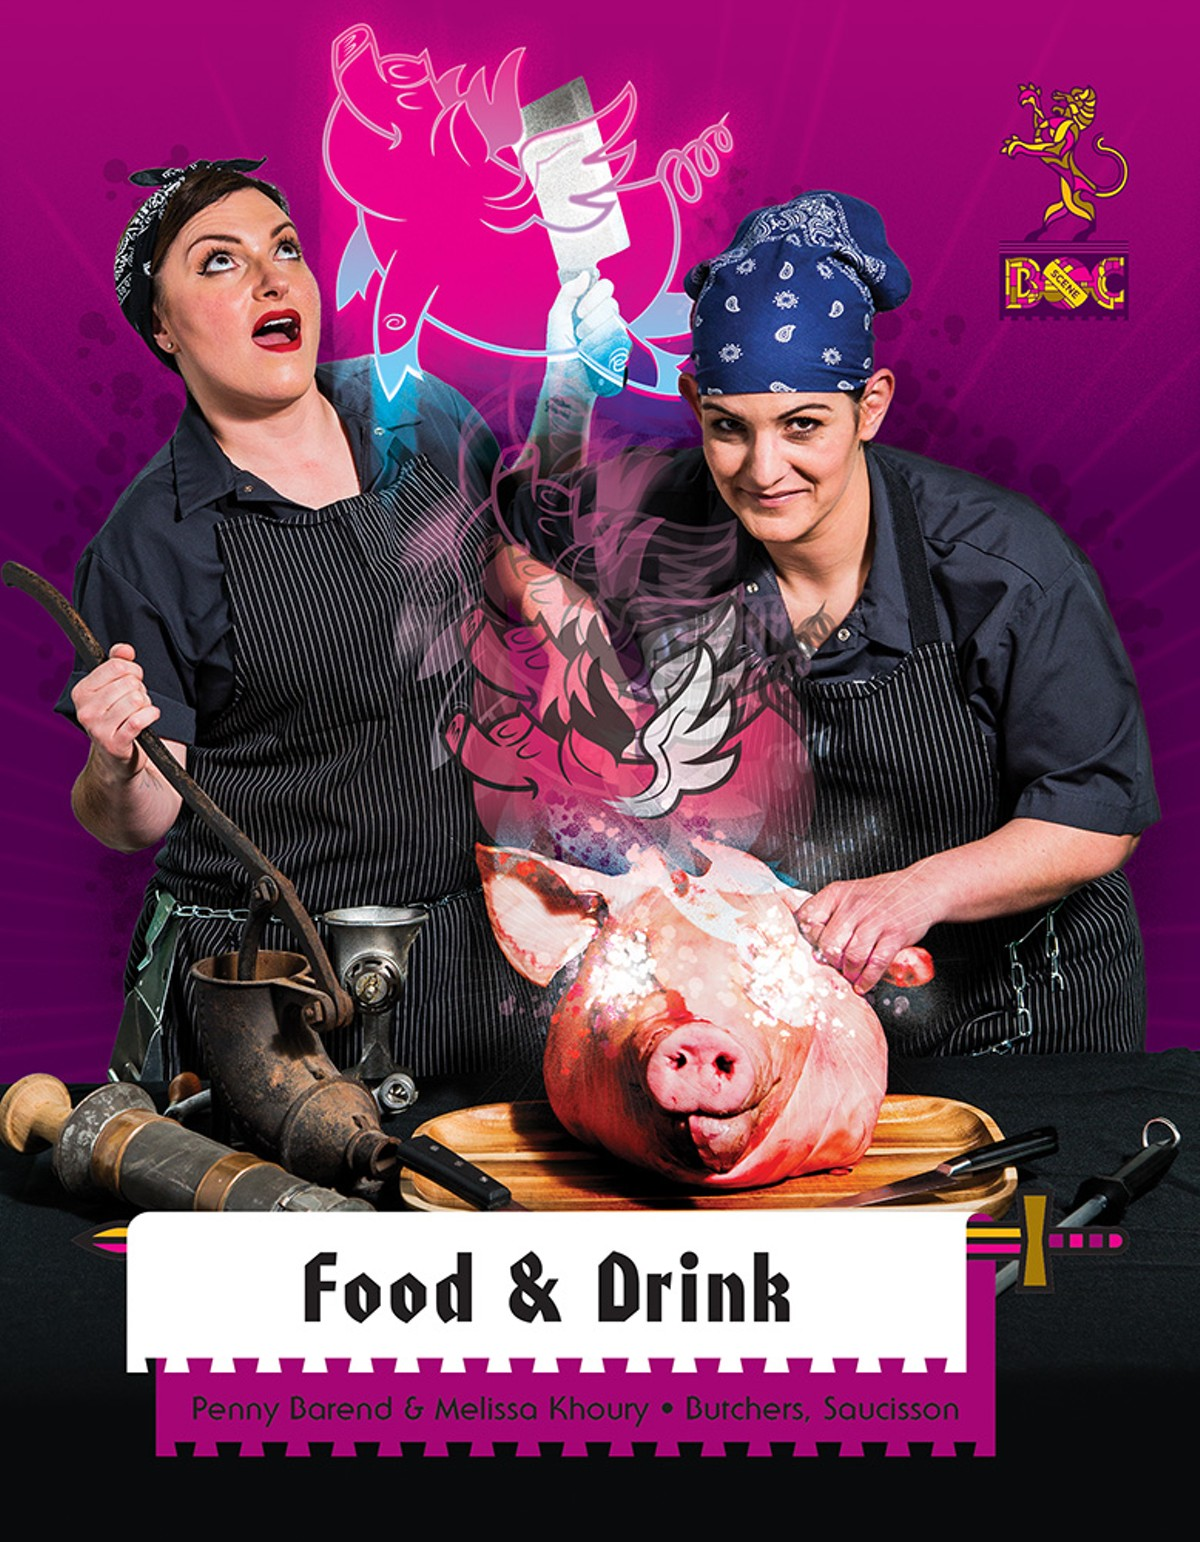 Penny Barend and Melissa Khoury, Butchers, Saucisson